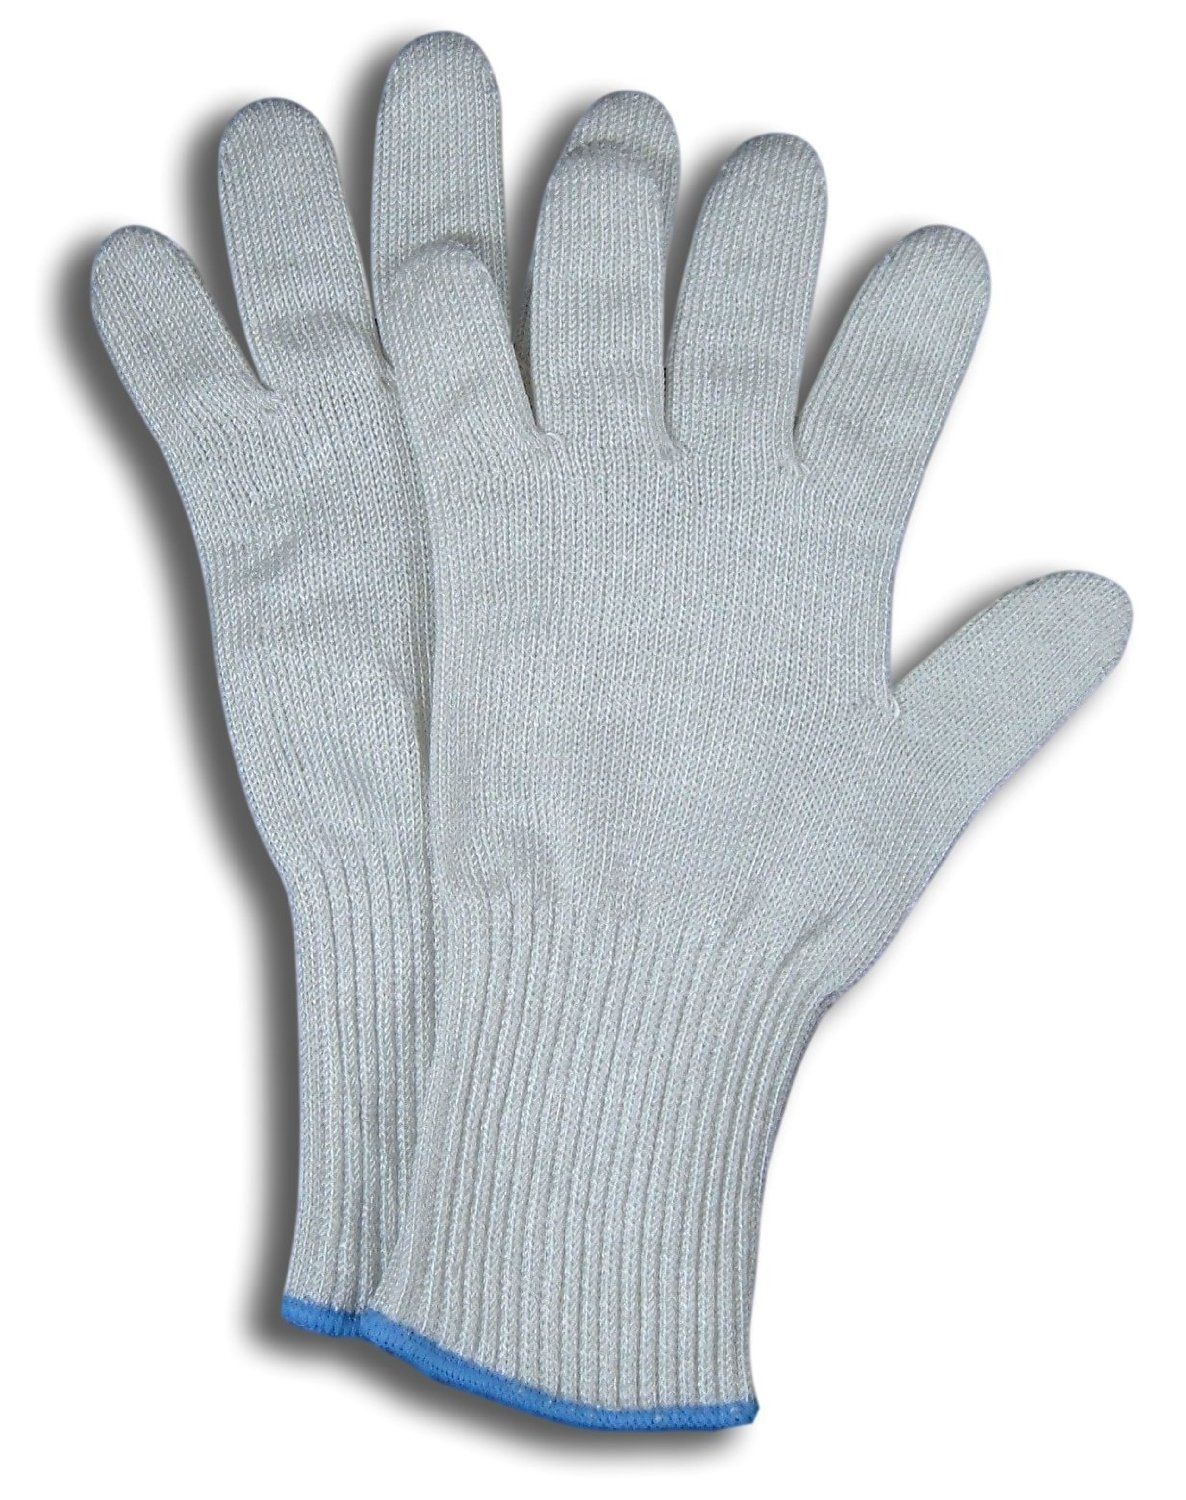 Cut Resistant Protective Gloves for Whittling Wood Carving or Cooking